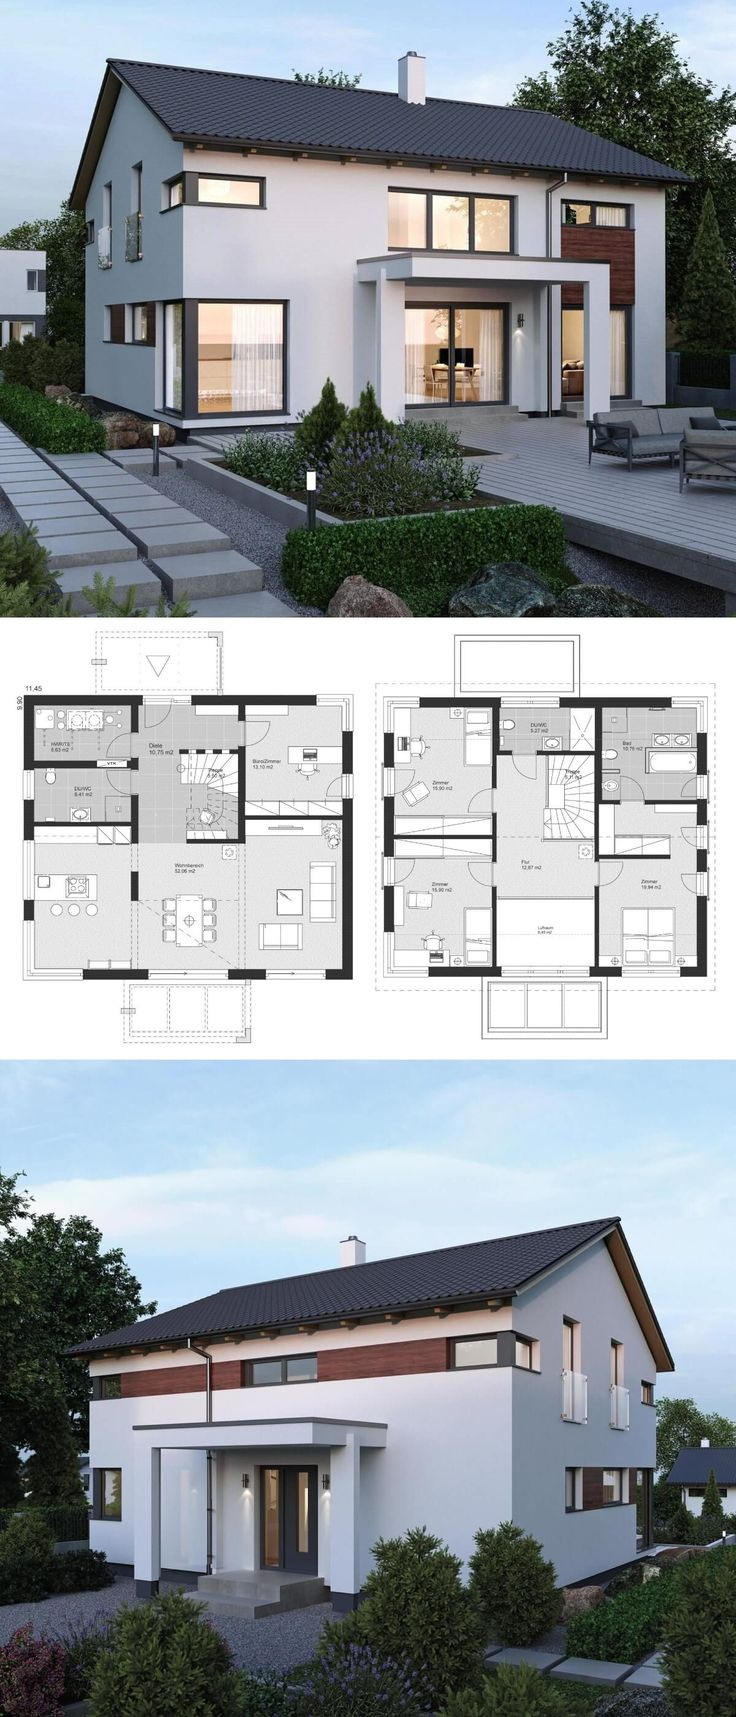 """New Modern Contemporary European Styles Architecture Design House Plans """"ELK Haus 189"""" – Dream Home Ideas with Open Floor and 2 Storey Layout by ELK Fertighaus – Arquitecture Style House Plan and Interior with Kitchen Living Room Bathrooms 3 Bedrooms Nursery Kids Office Entrance Hall – Arquitectura moderna casas planos – HausbauDirekt.de #home #house #houseplan #dreamhome #newhome #homedesign #houseideas #housegoals #construction #architecture #architect #arquitectura #hausbaudirekt"""